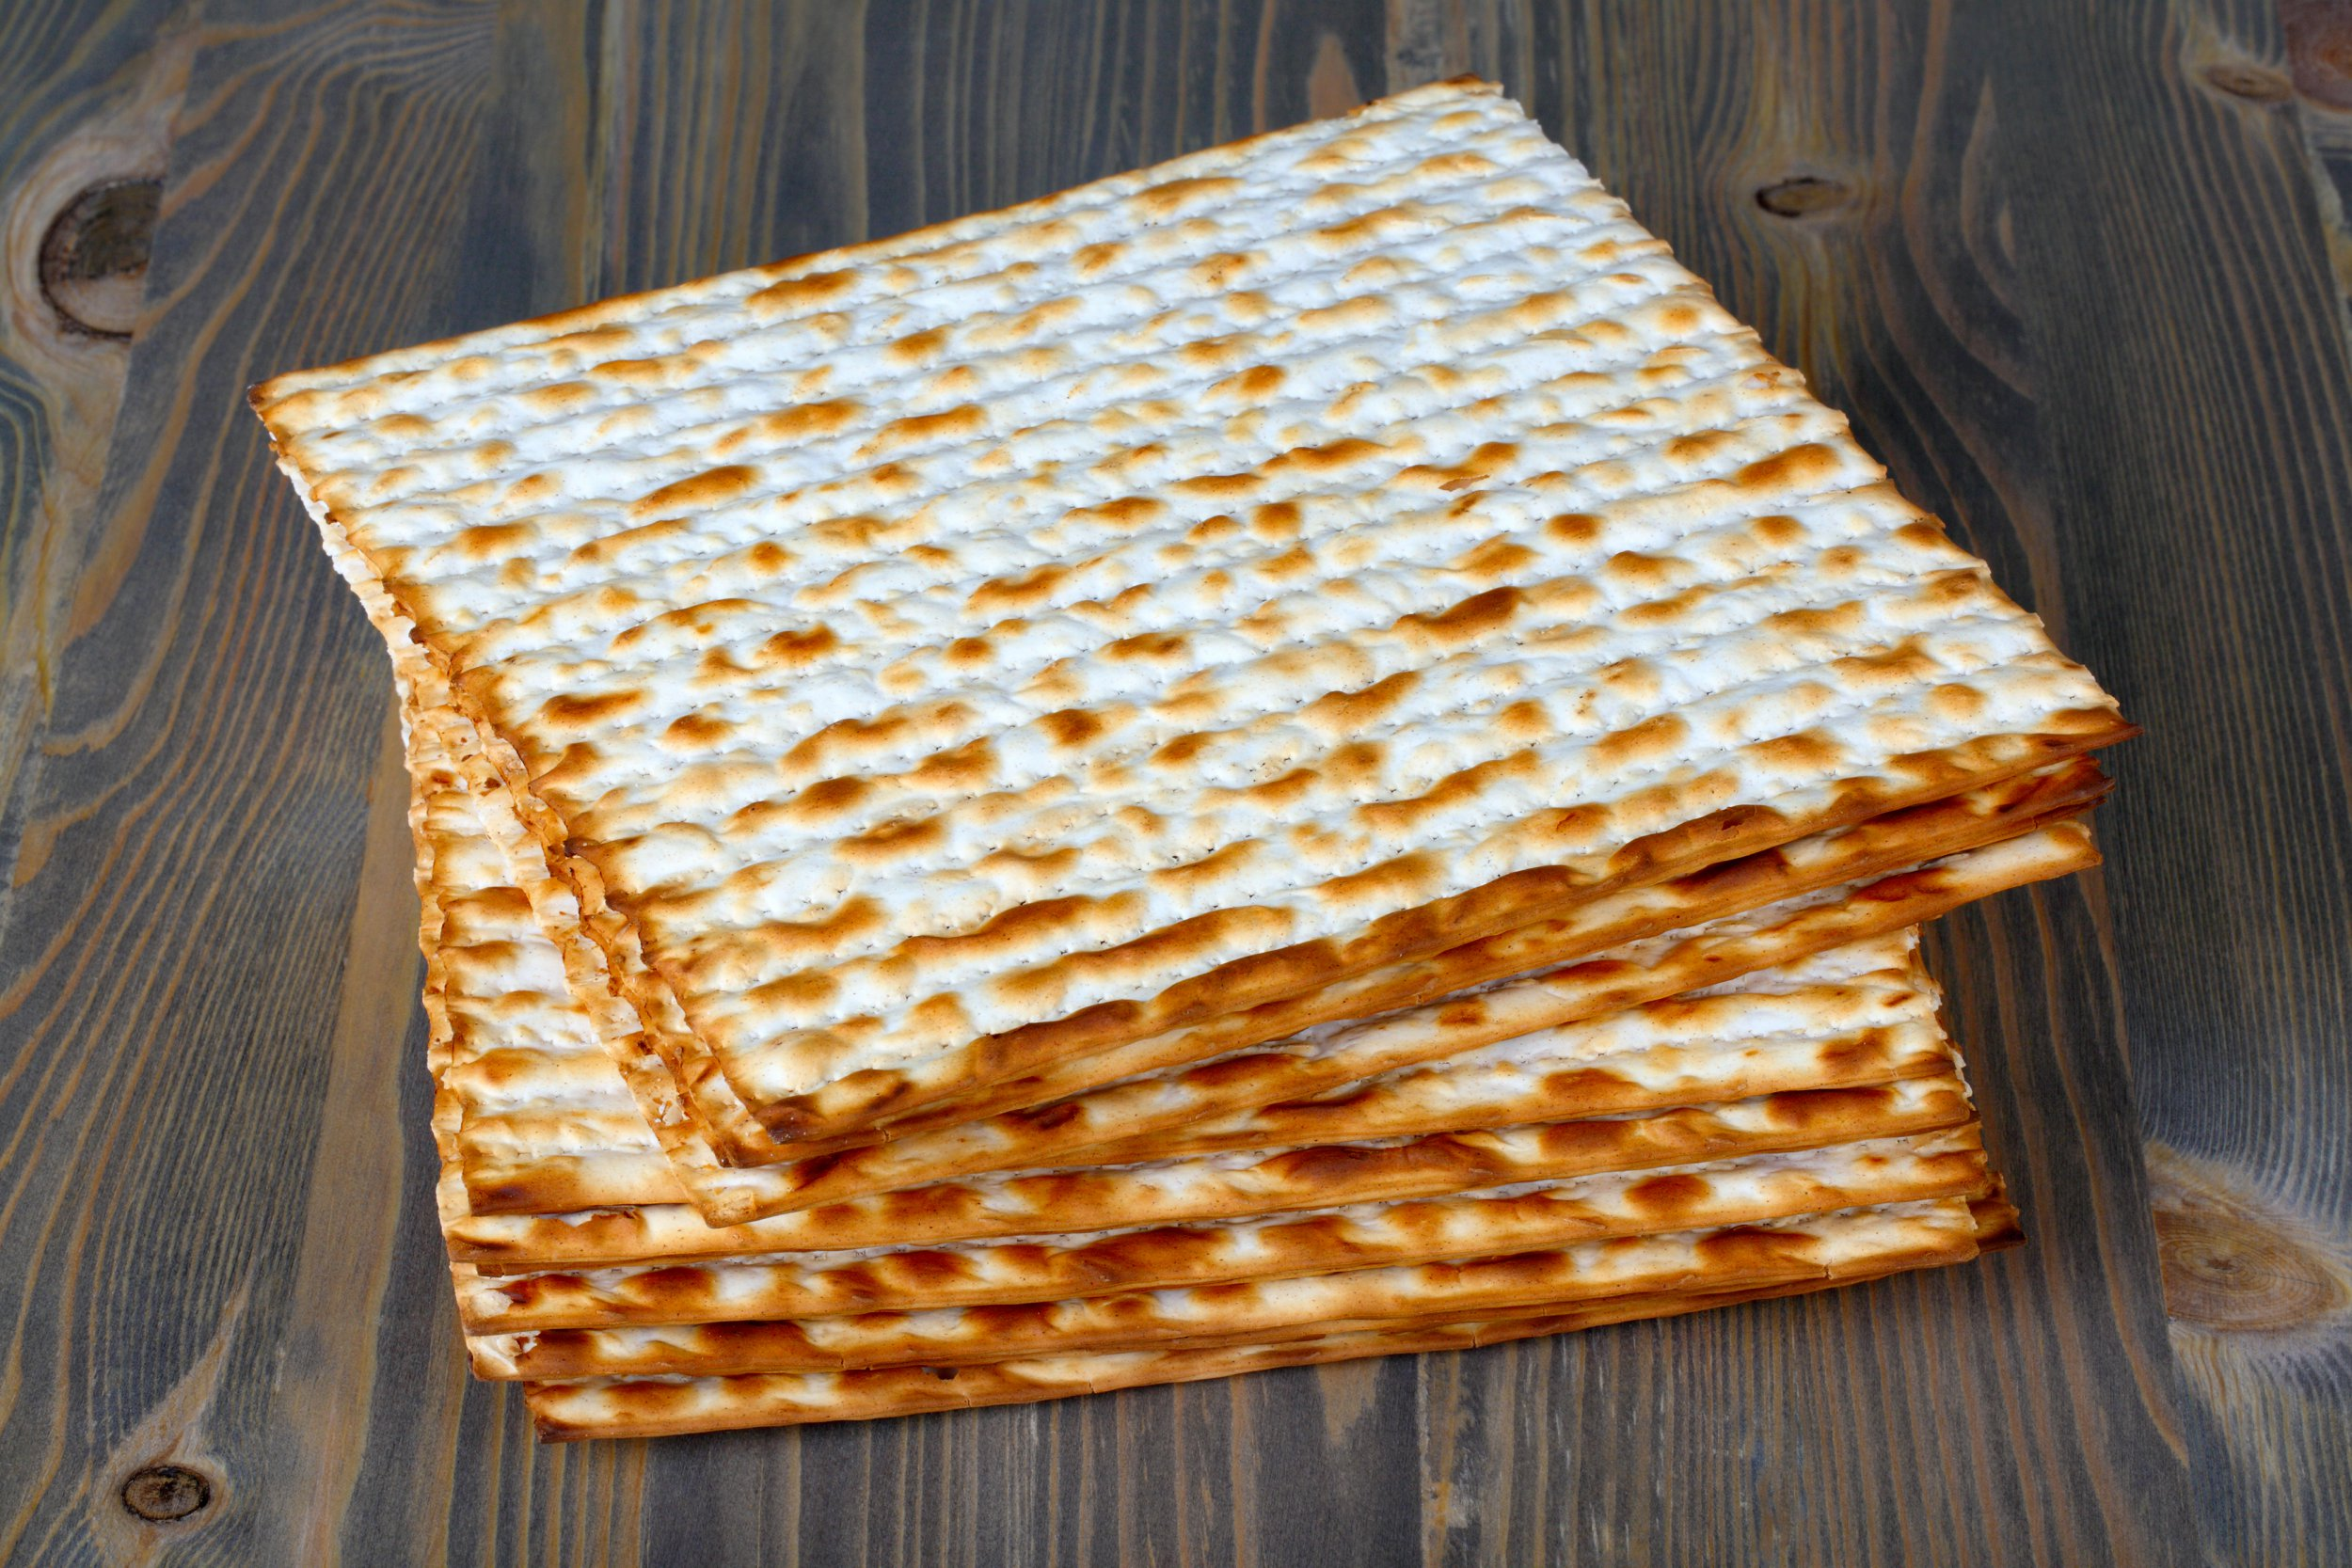 Why are Jewish people not allowed to eat bread and certain other foods on Passover?